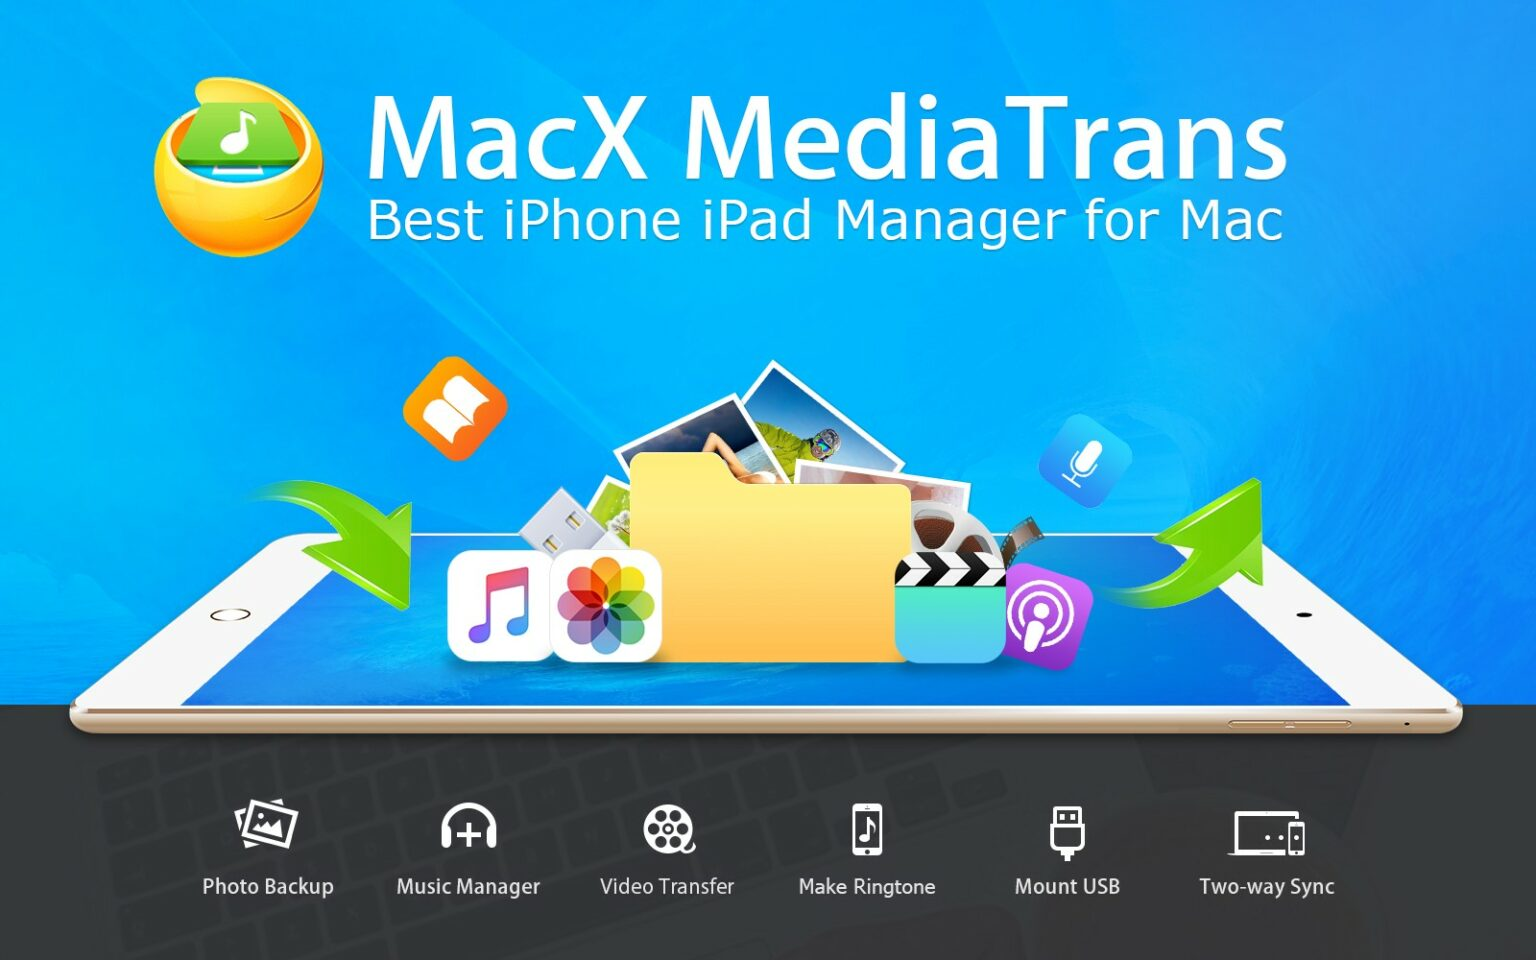 Digiarty offers a free giveaway of MacX MediaTrans.